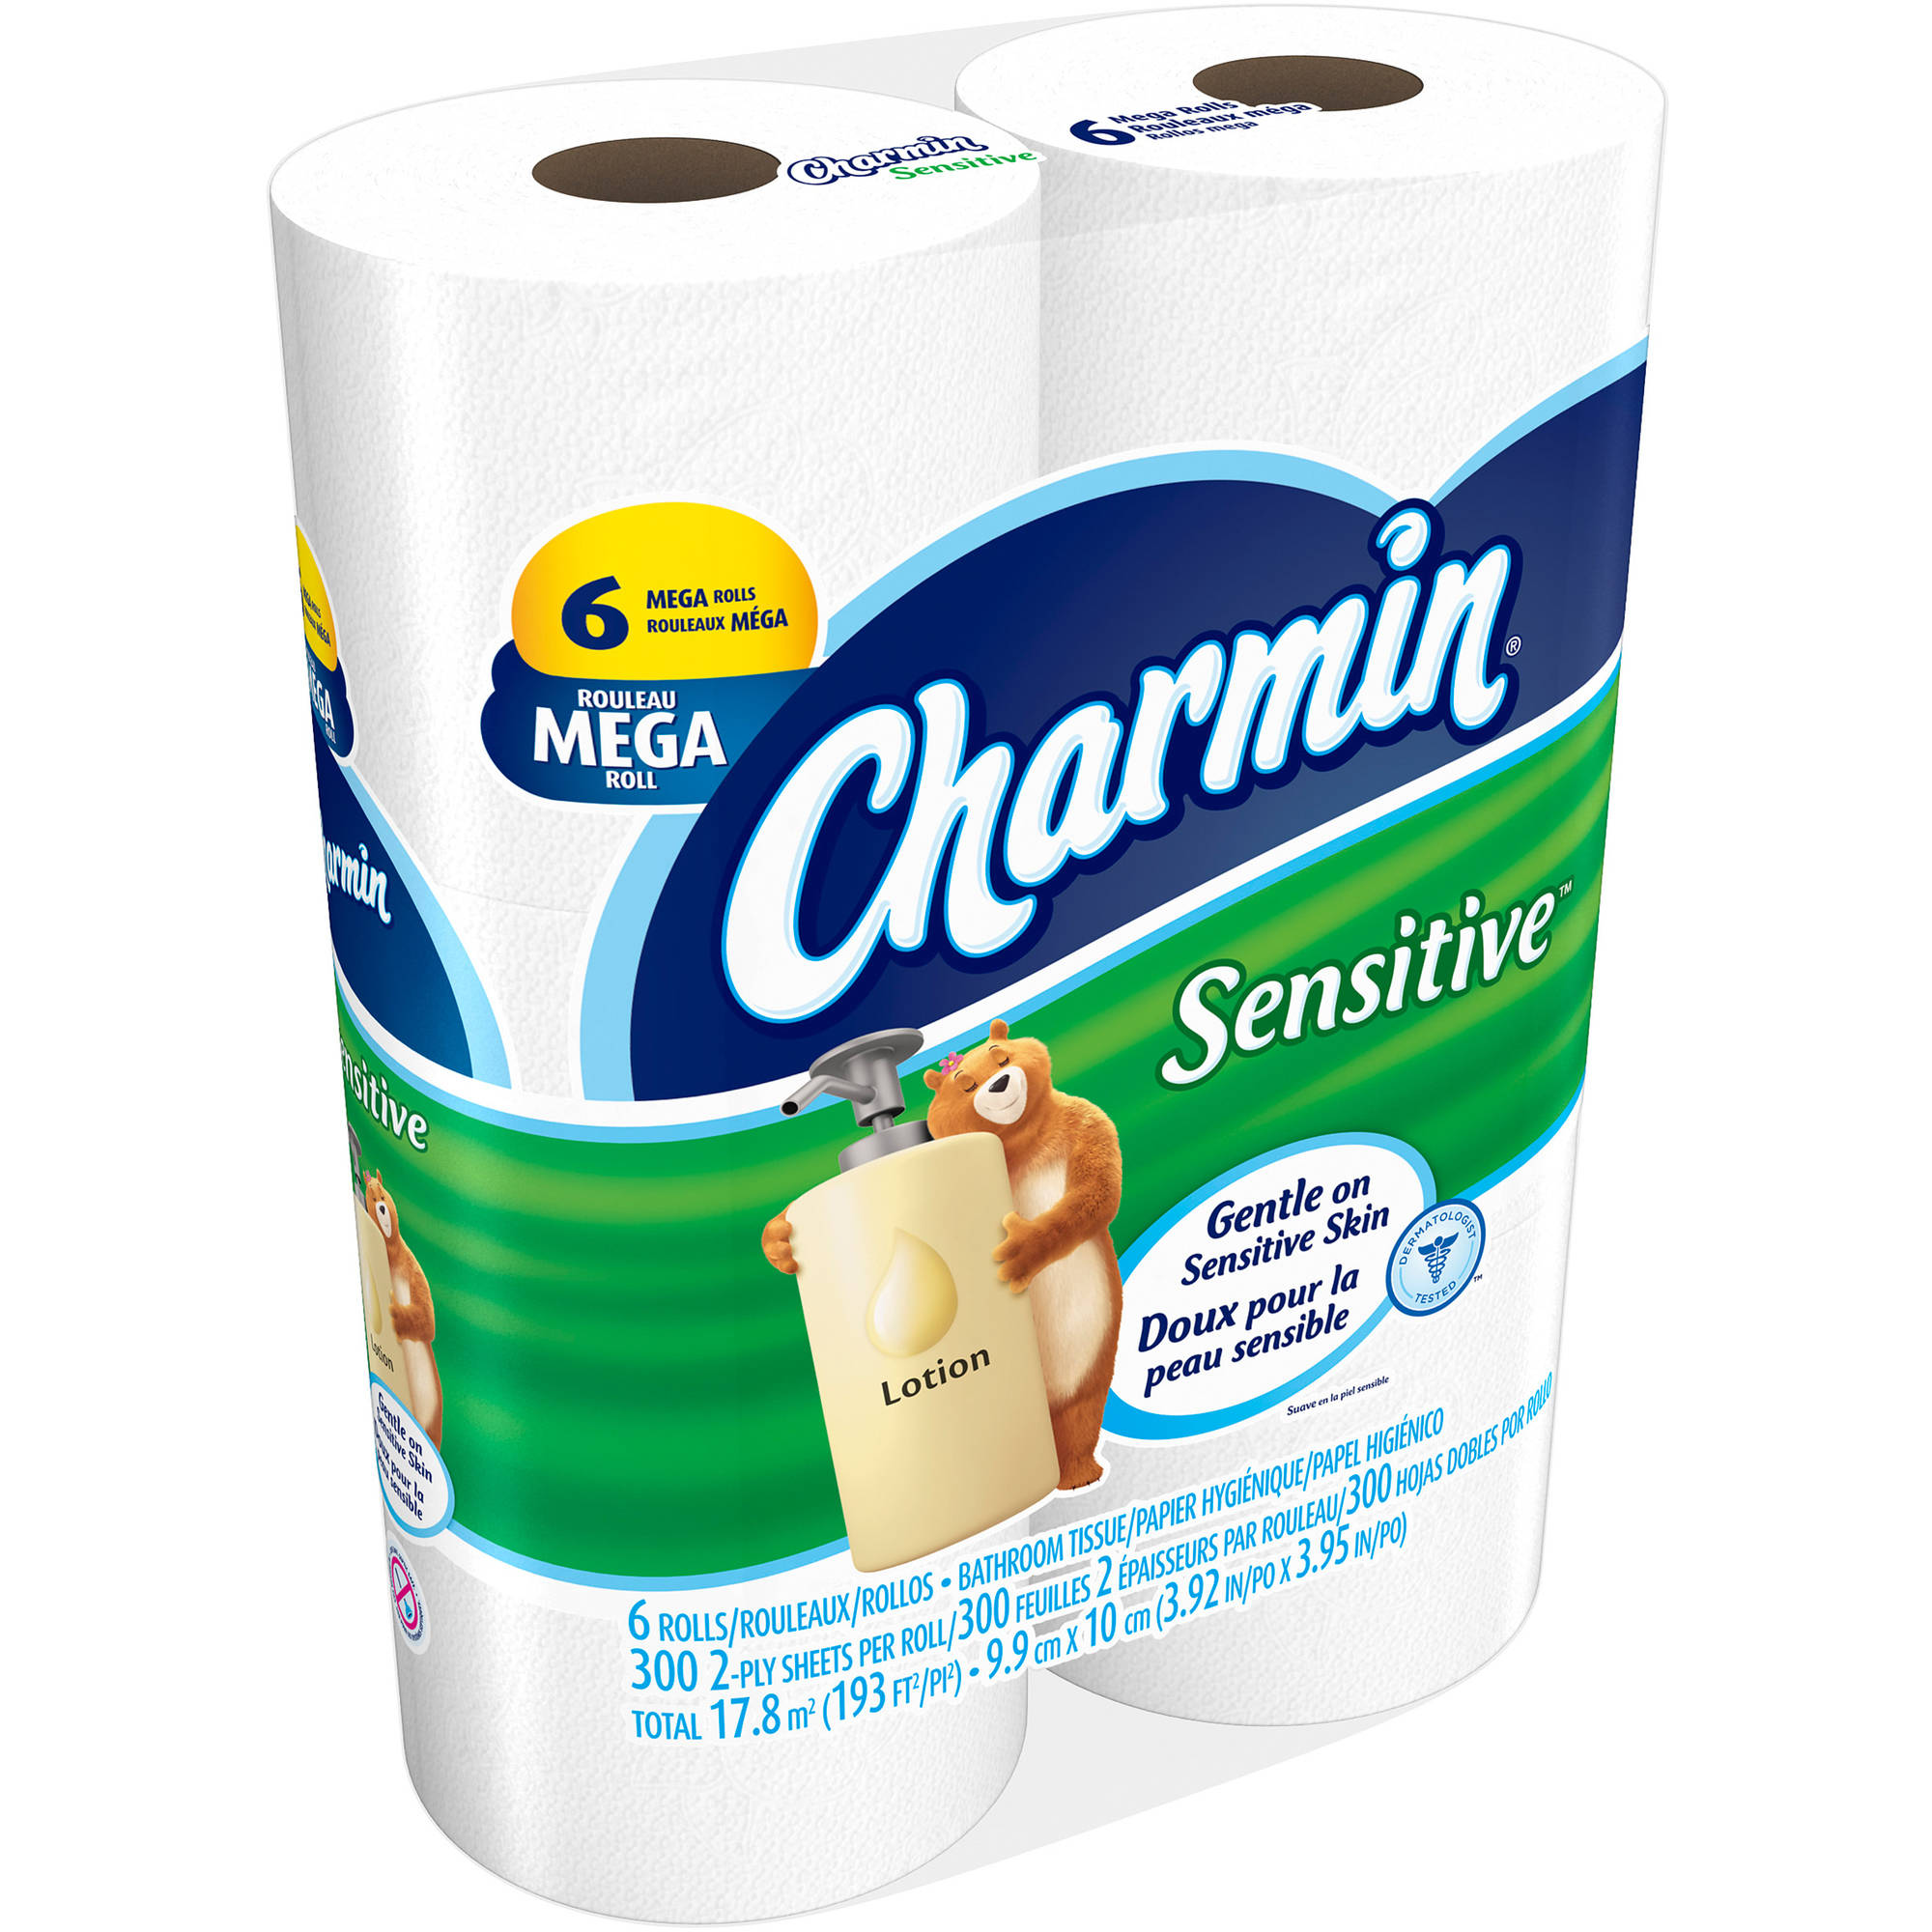 Charmin Sensitive Mega Roll Bathroom Tissue, 6 rolls